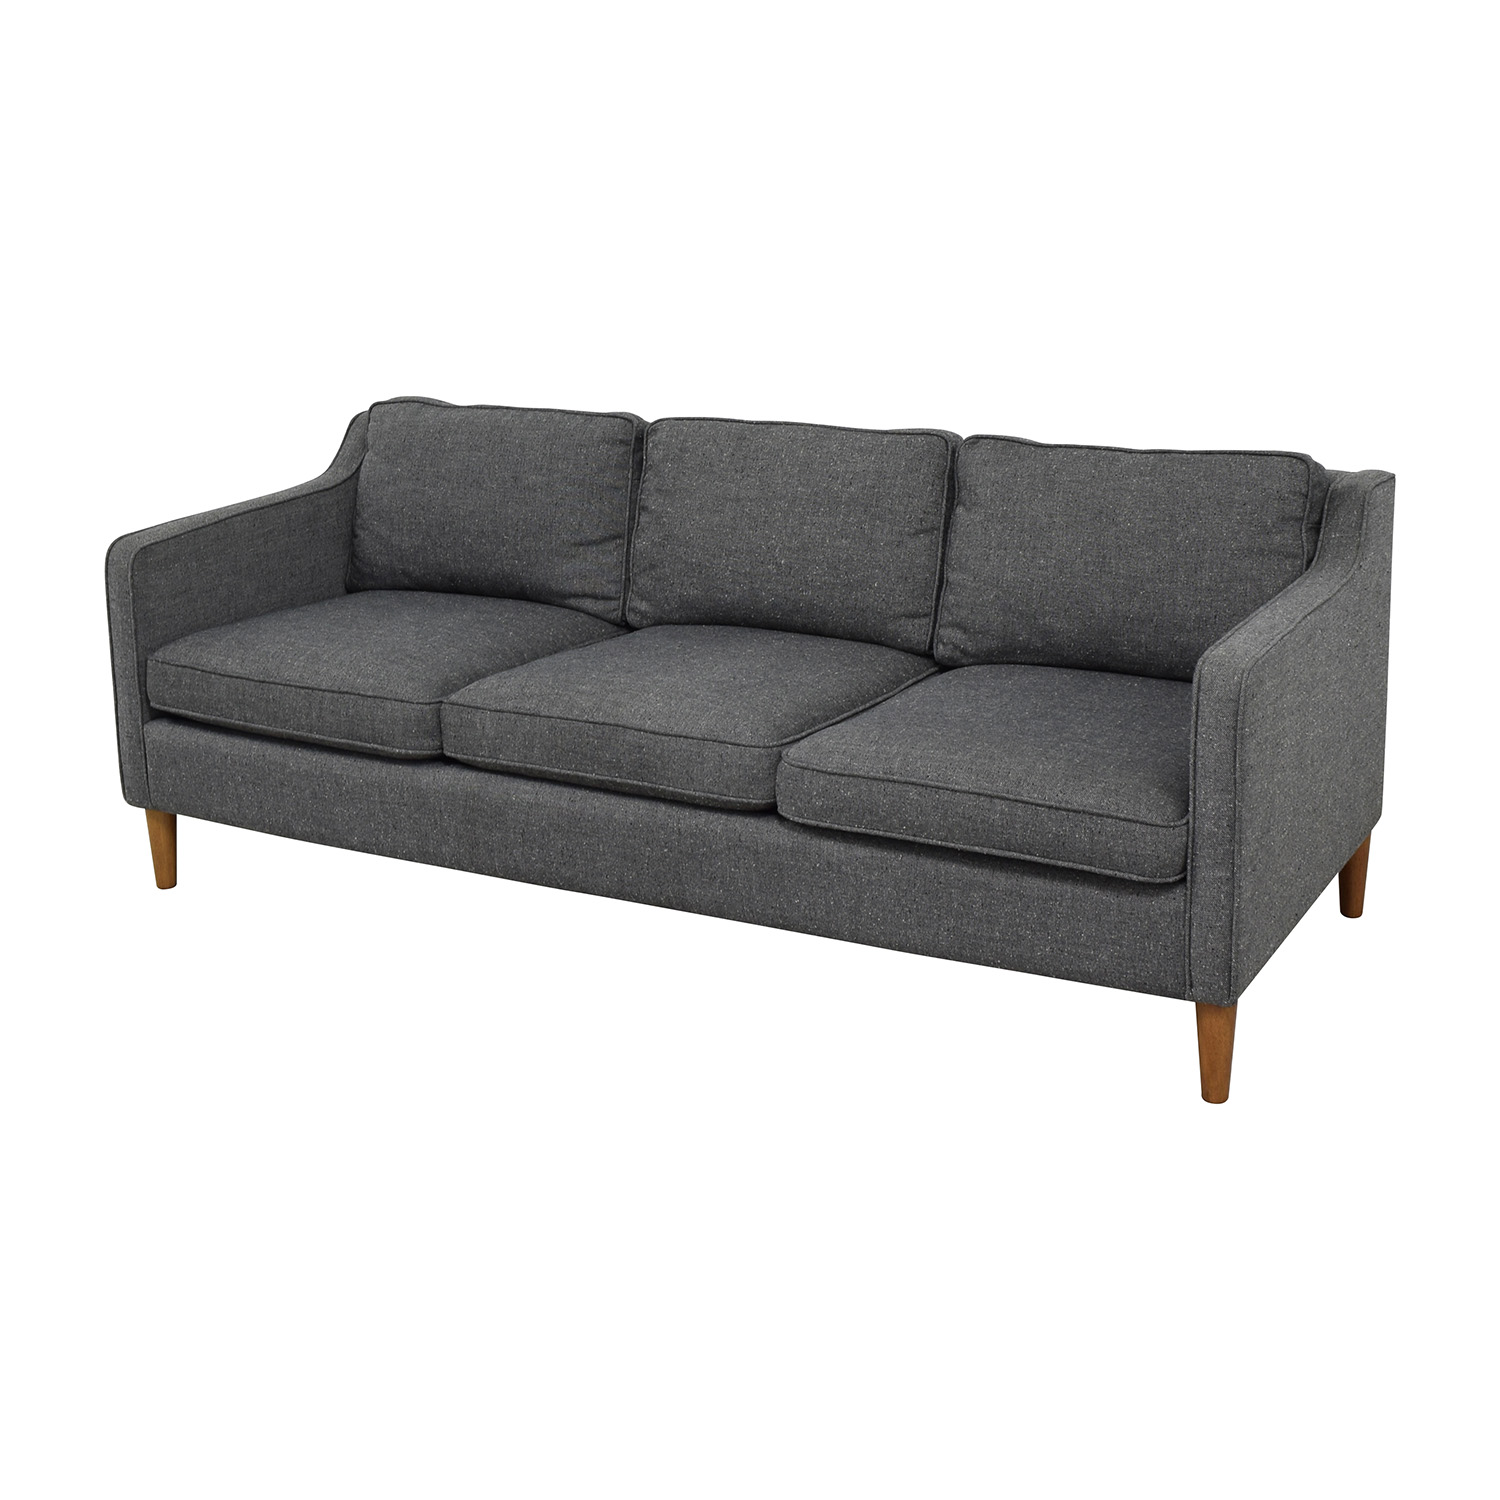 48 off west elm west elm hamilton sofa in tweed sofas